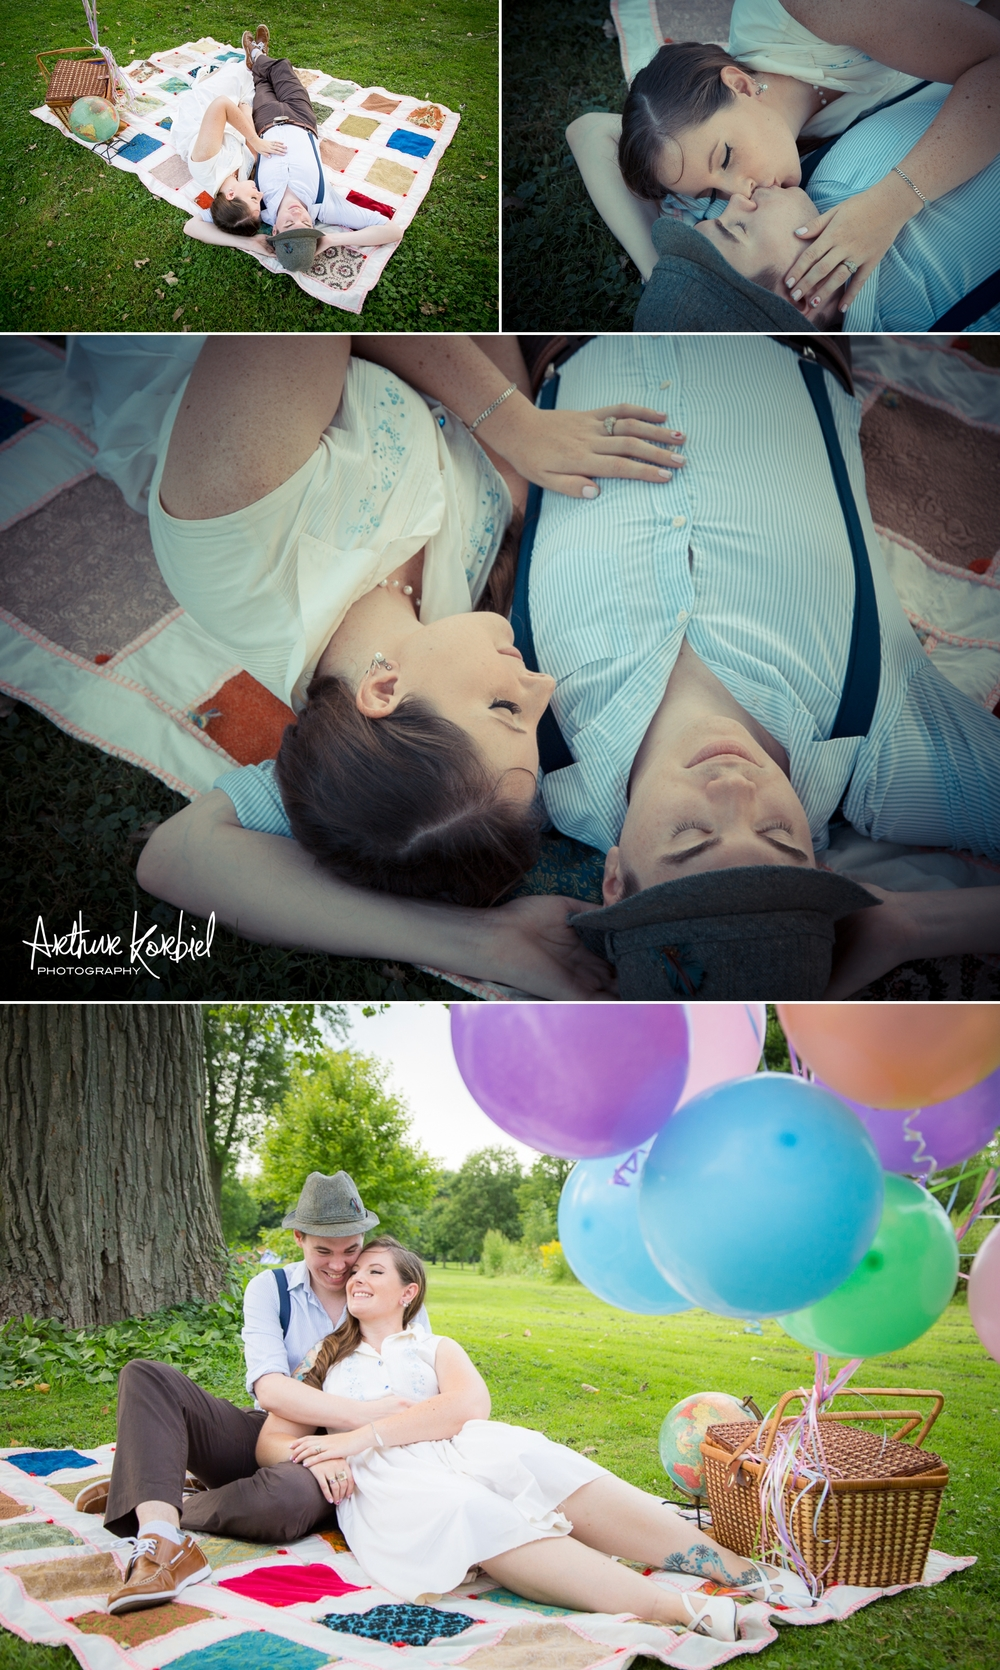 Arthur Korbiel Photography - London Engagement Wedding Photographer - Vintage - Bag Lady Variety - Gibbons Park_011.jpg